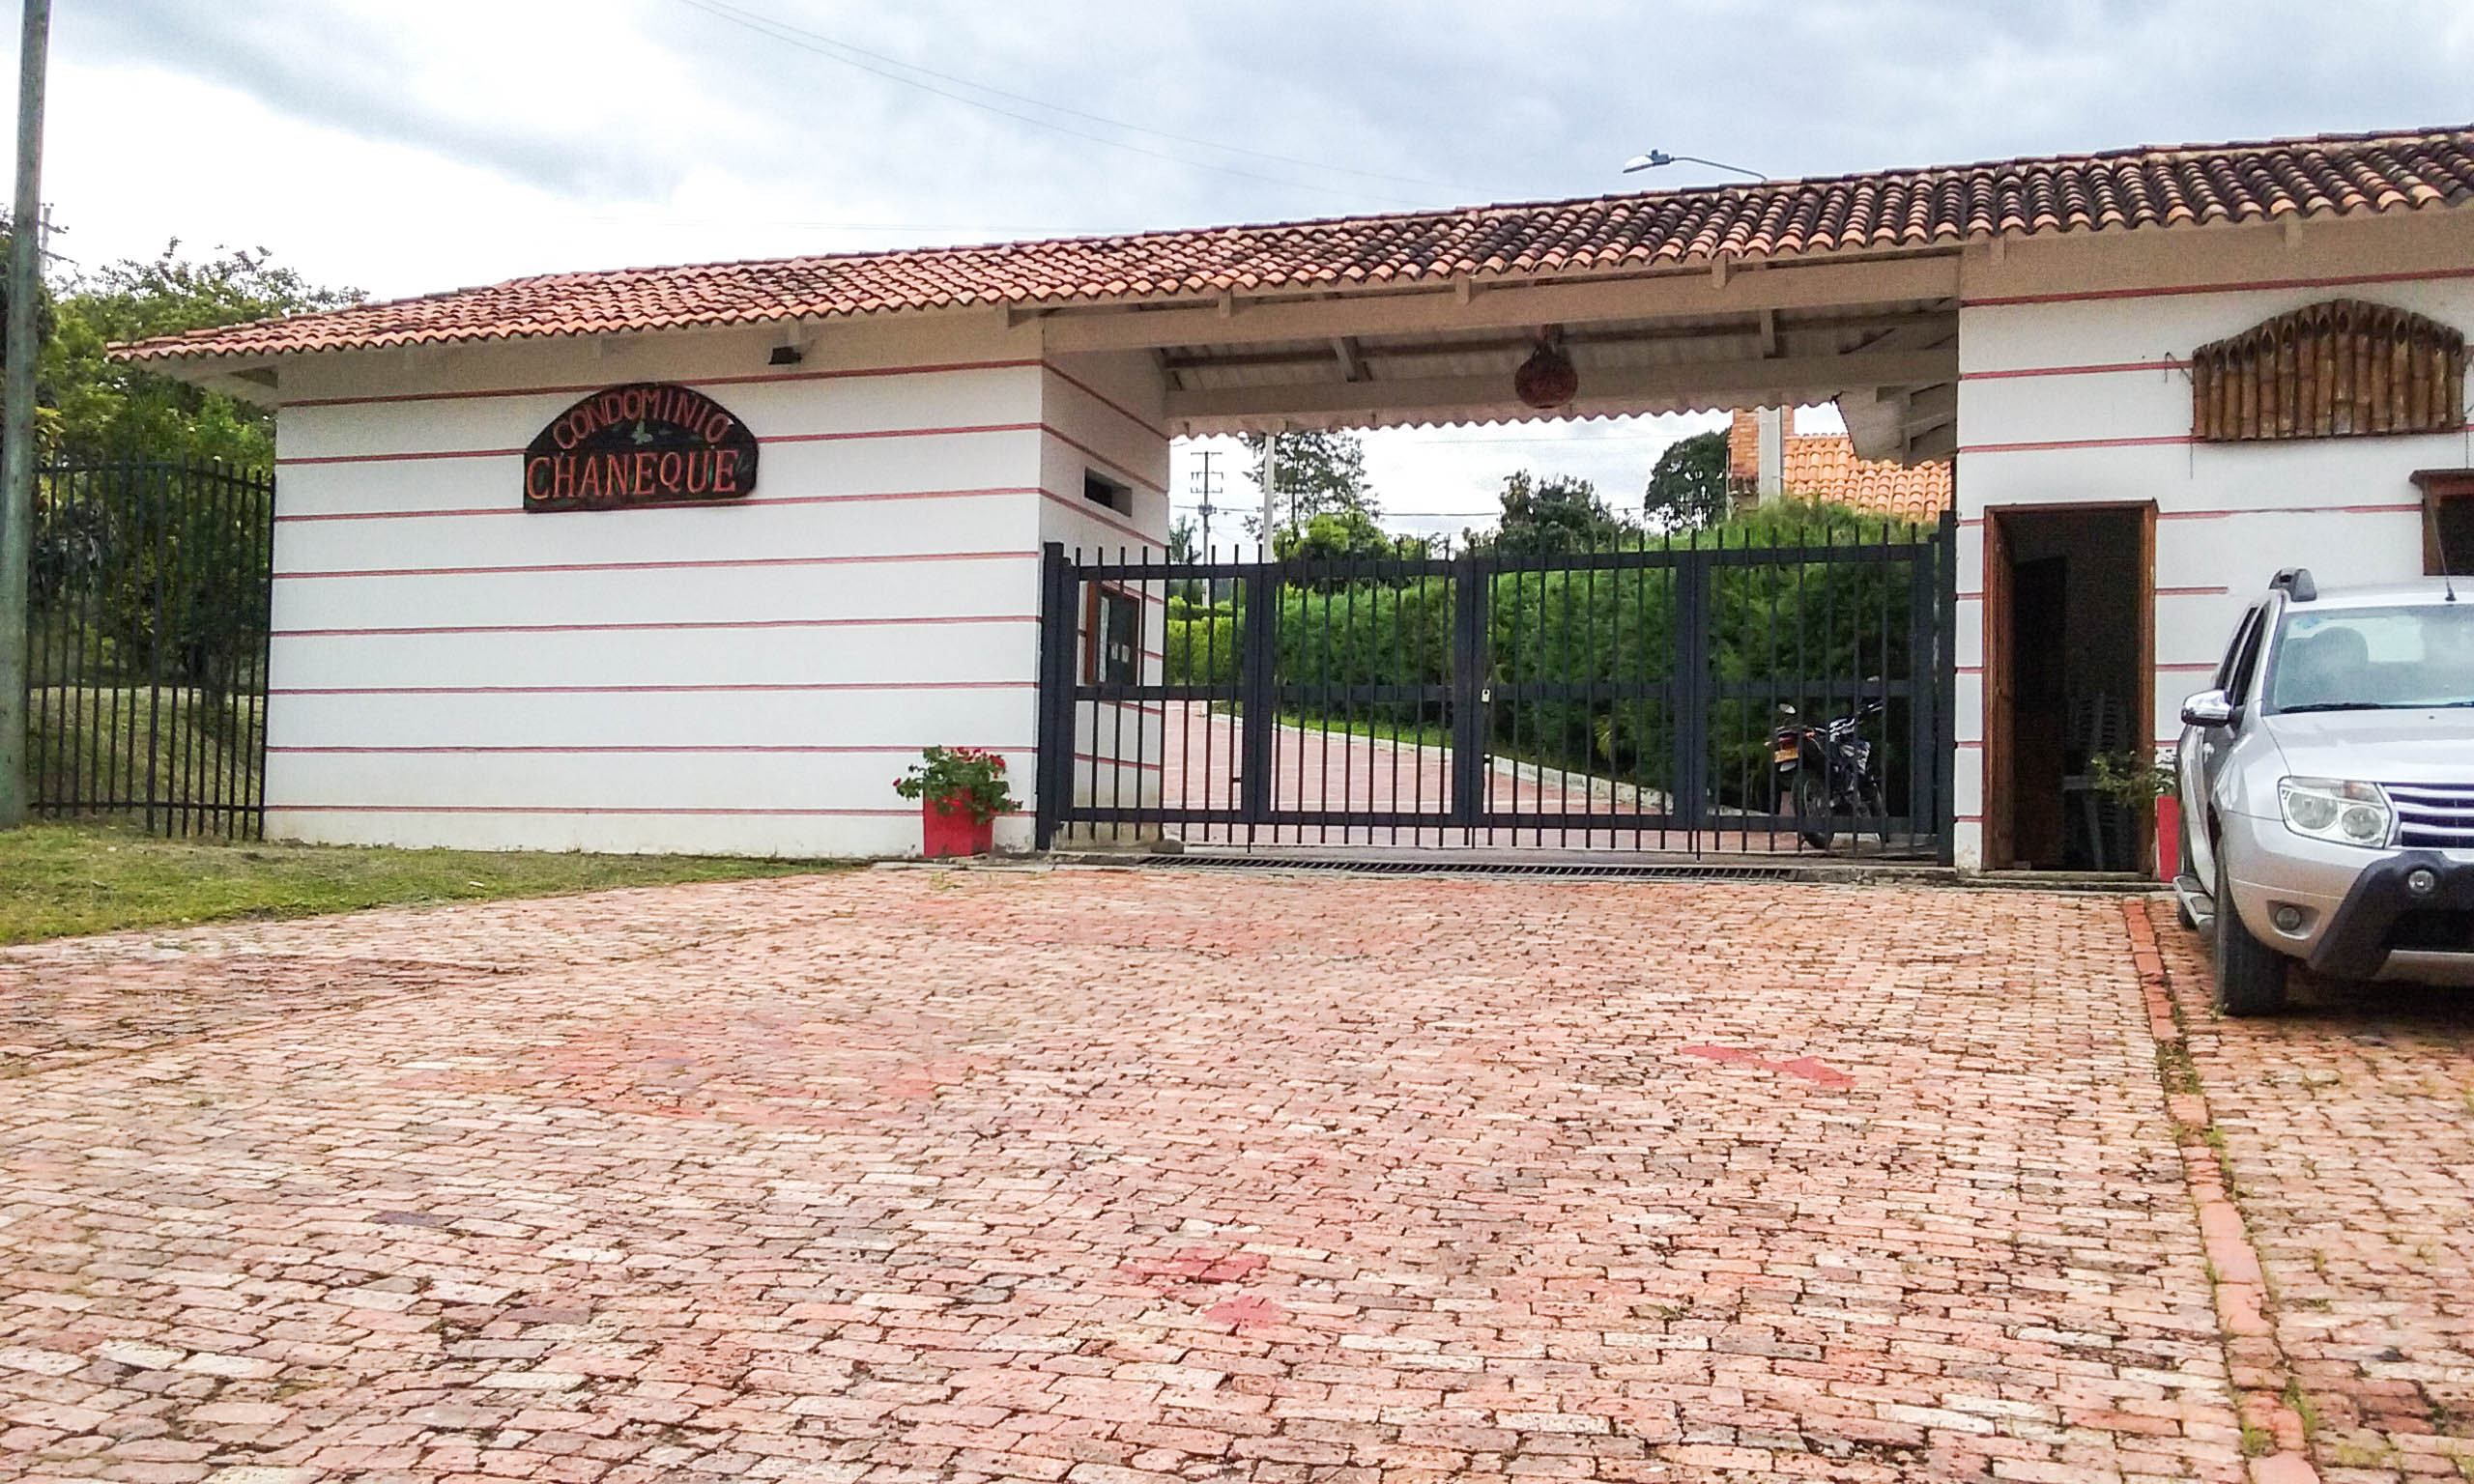 LOTE 16 CHANEQUE